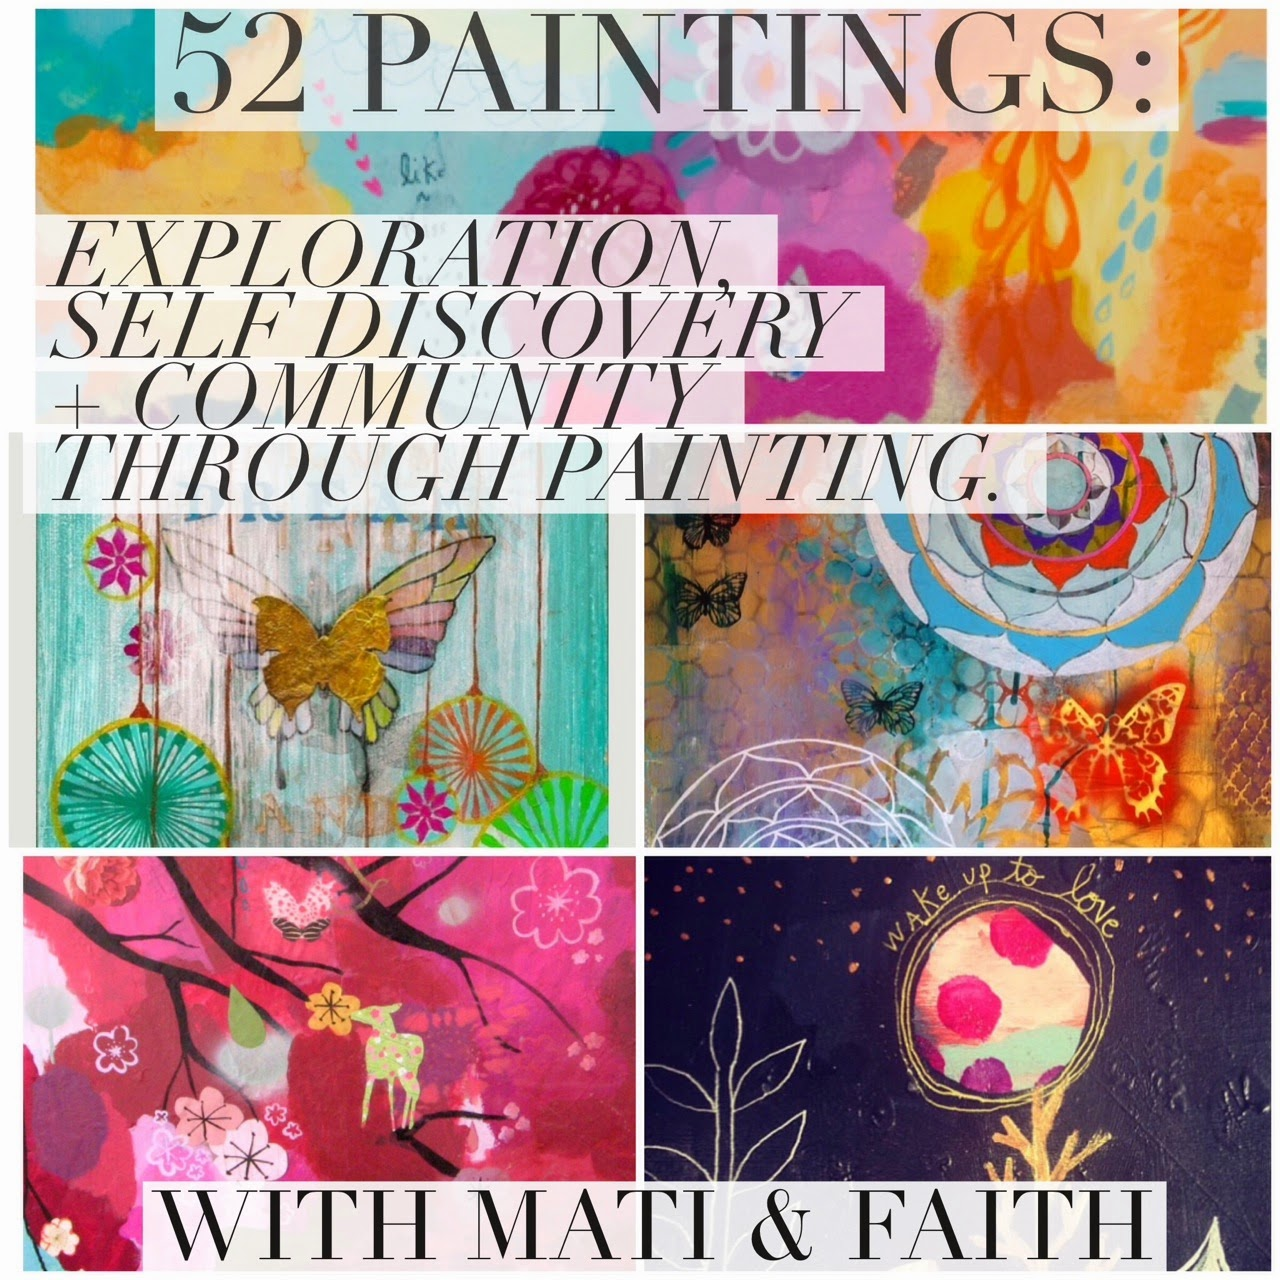 http://harmonyandfaith.blogspot.com/2015/02/a-new-year-long-painting-class.html